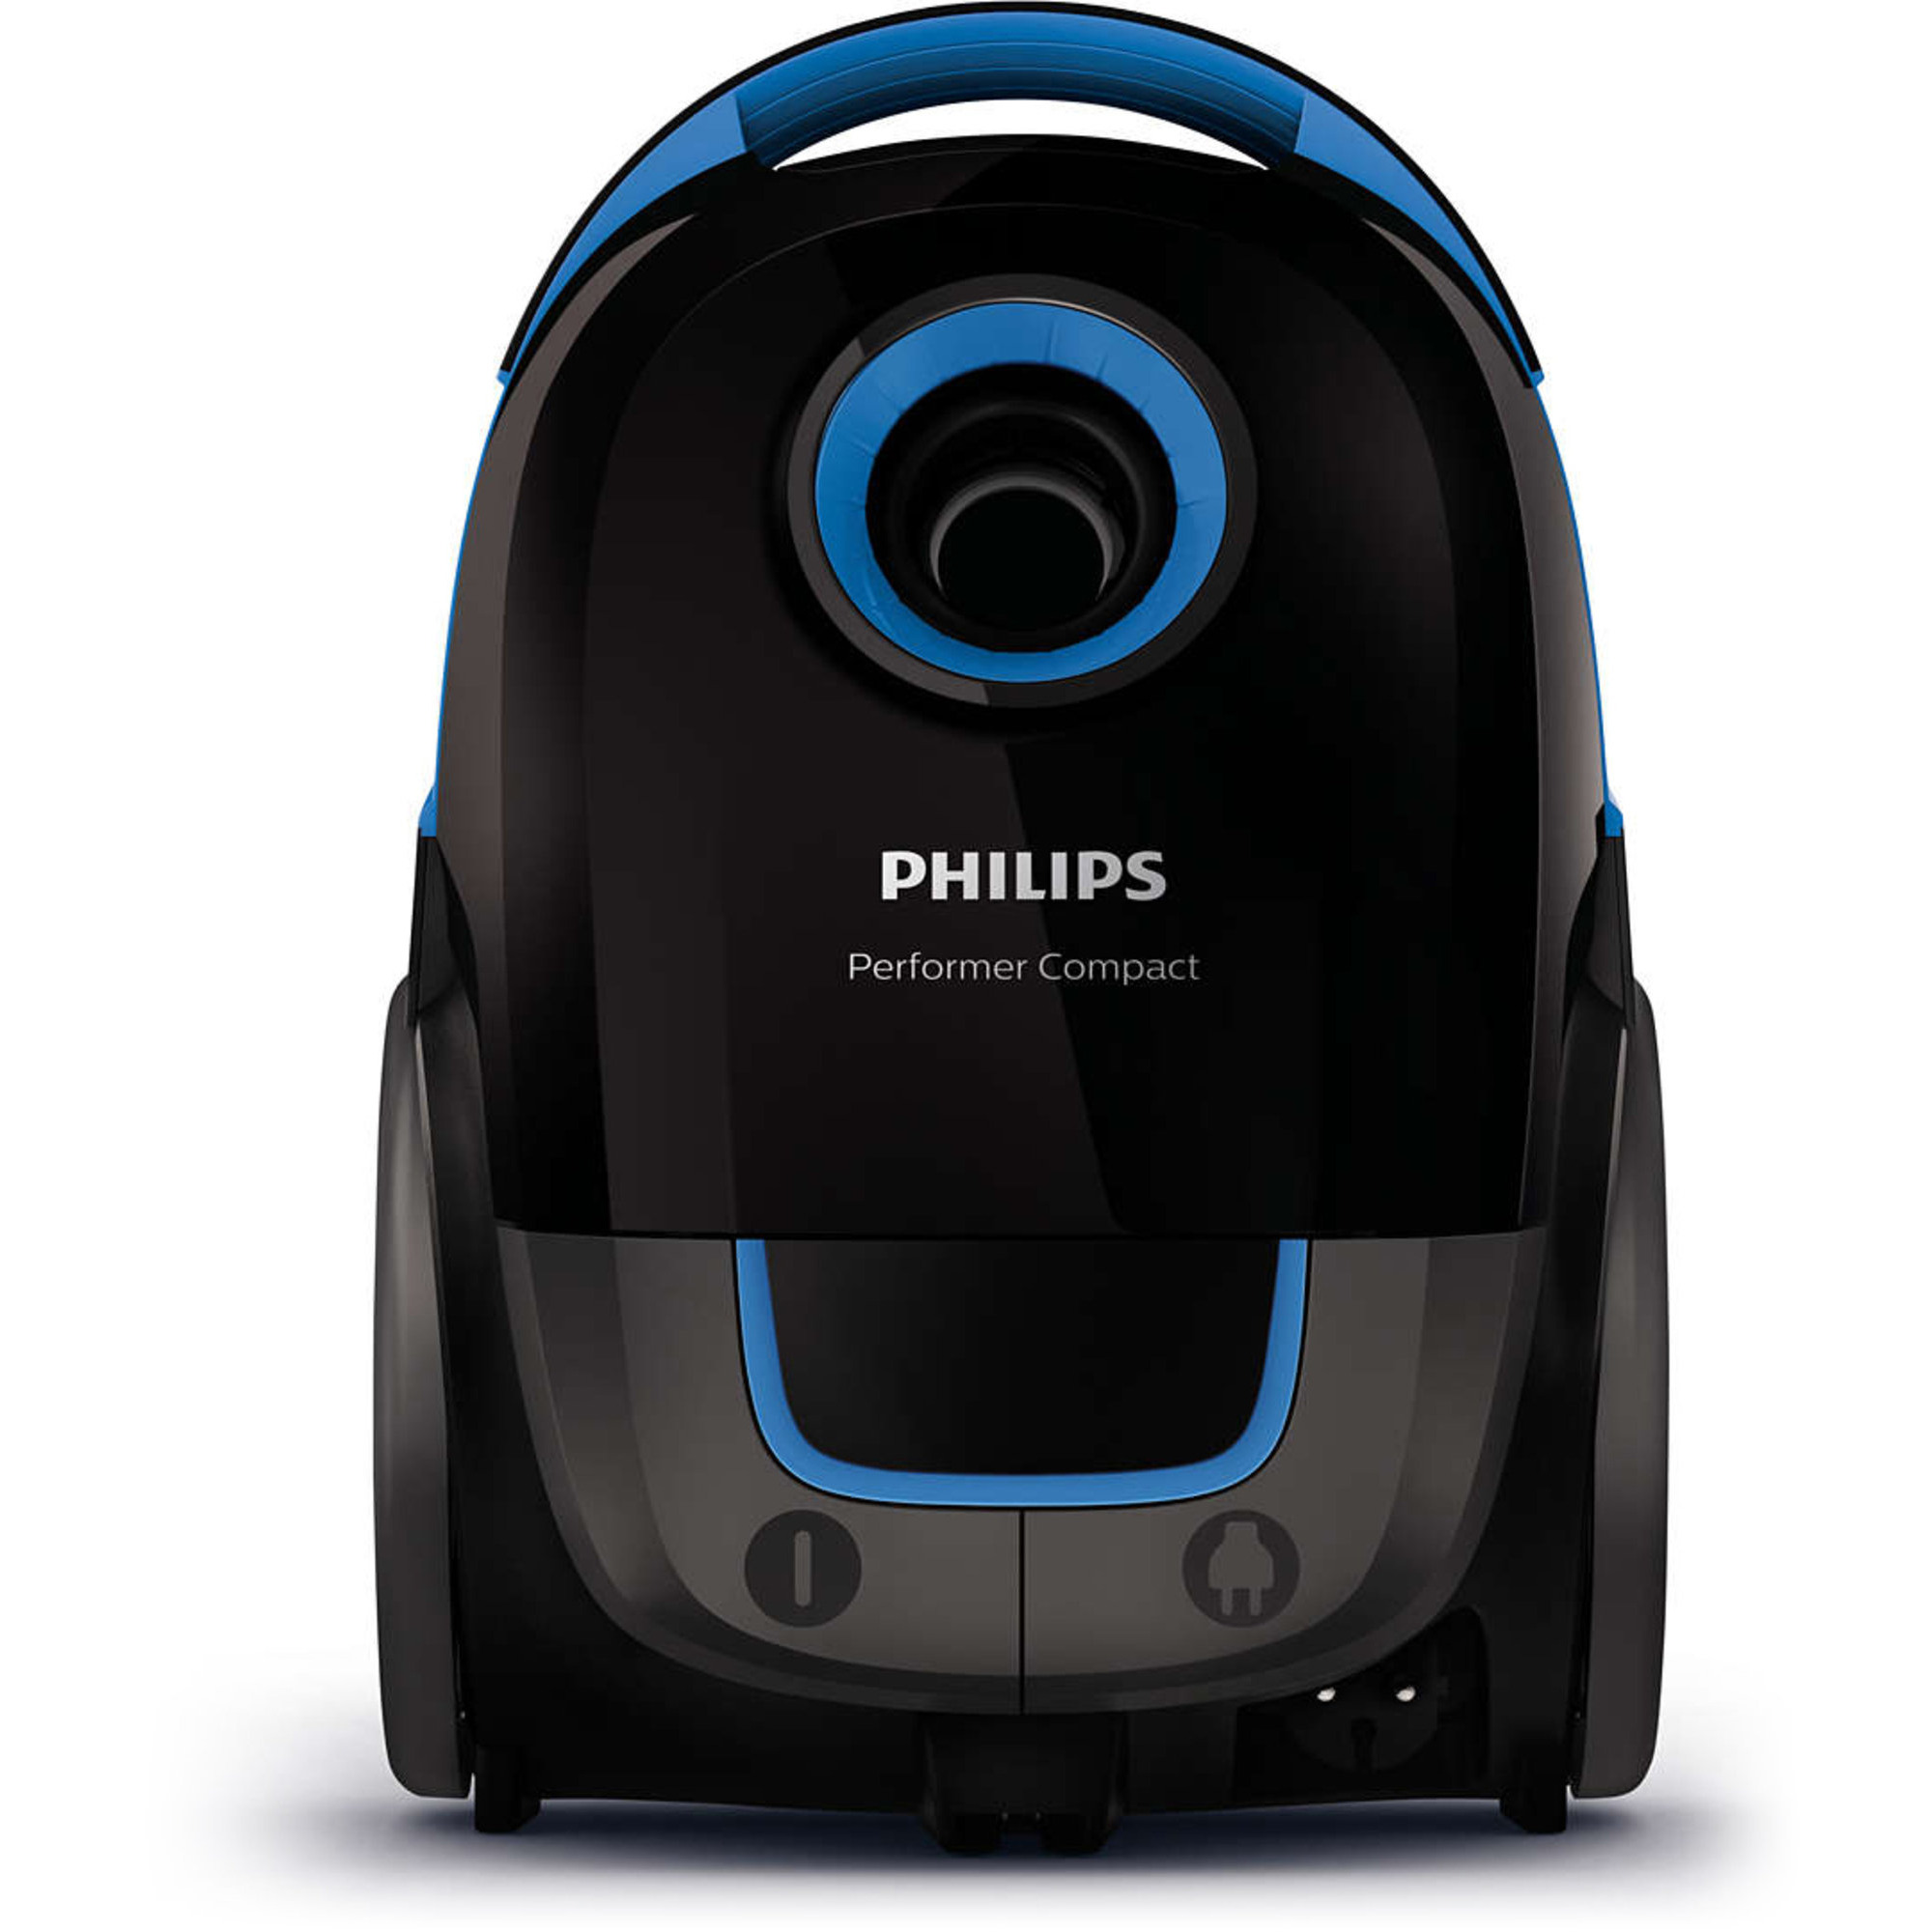 Philips FC8371/09 Performer Compact Sort k1